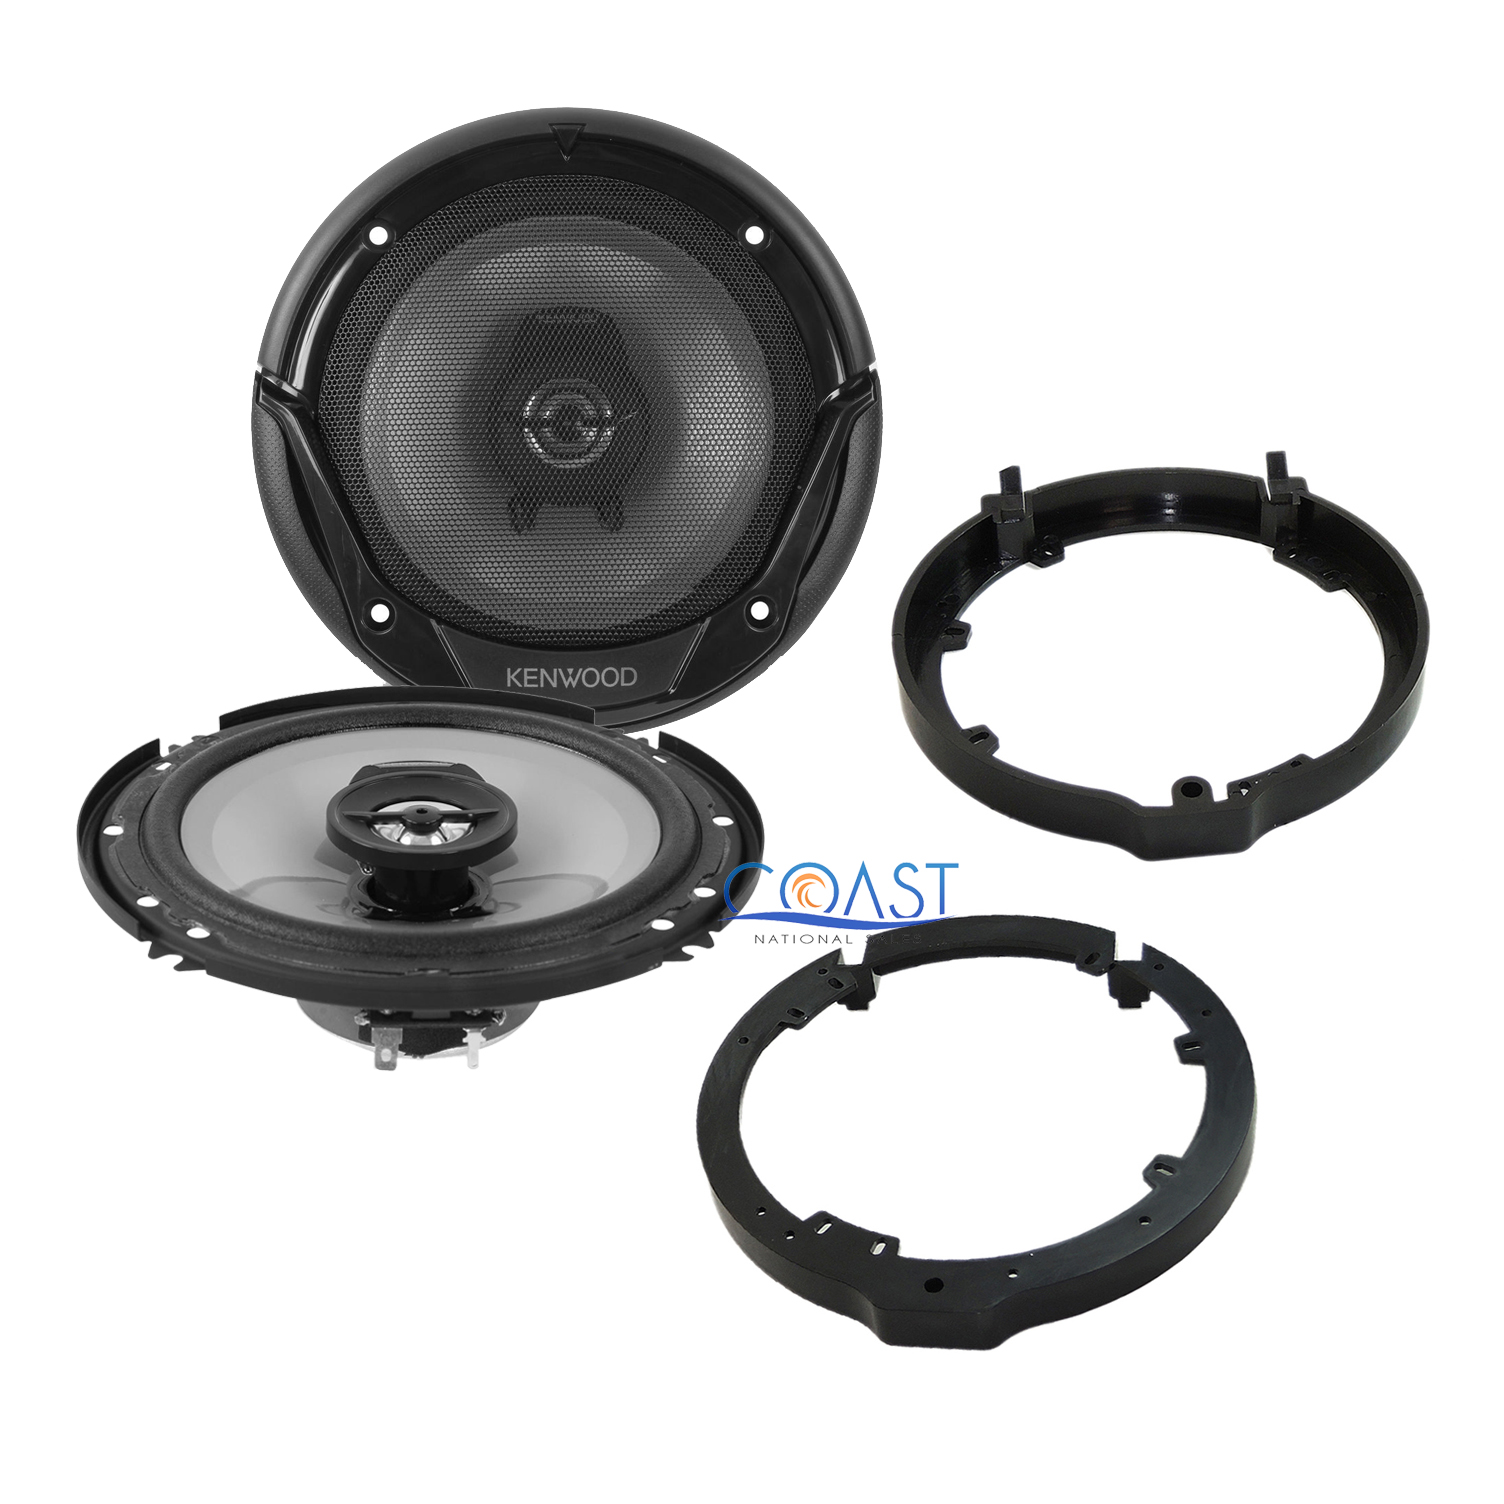 SCOSCHE SAHC634 2006-Up Honda Civic Speaker Adapter Pair for 6.5 or 6 3//4 Speakers